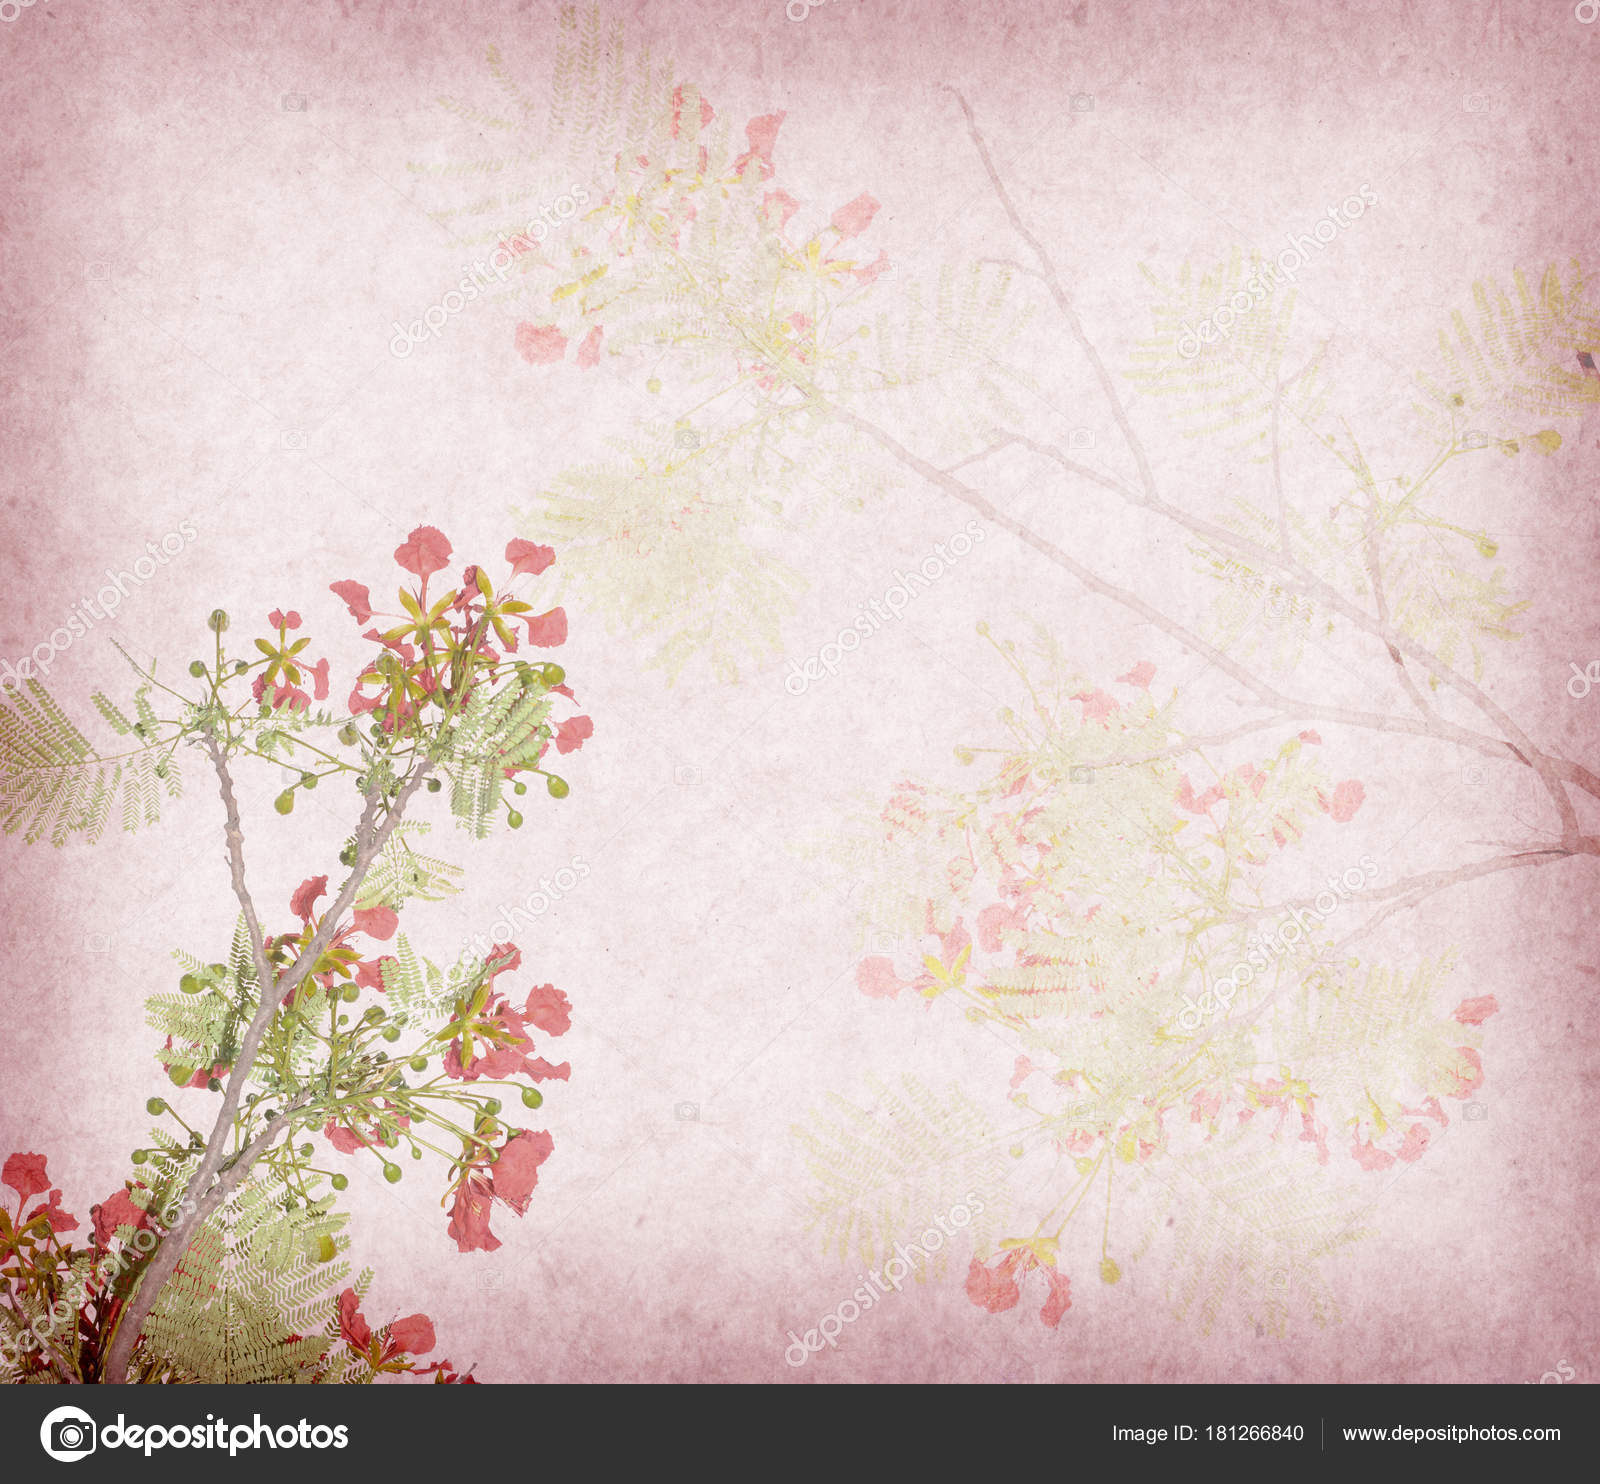 Peacock Flowers Tree Old Antique Vintage Paper Background Stock